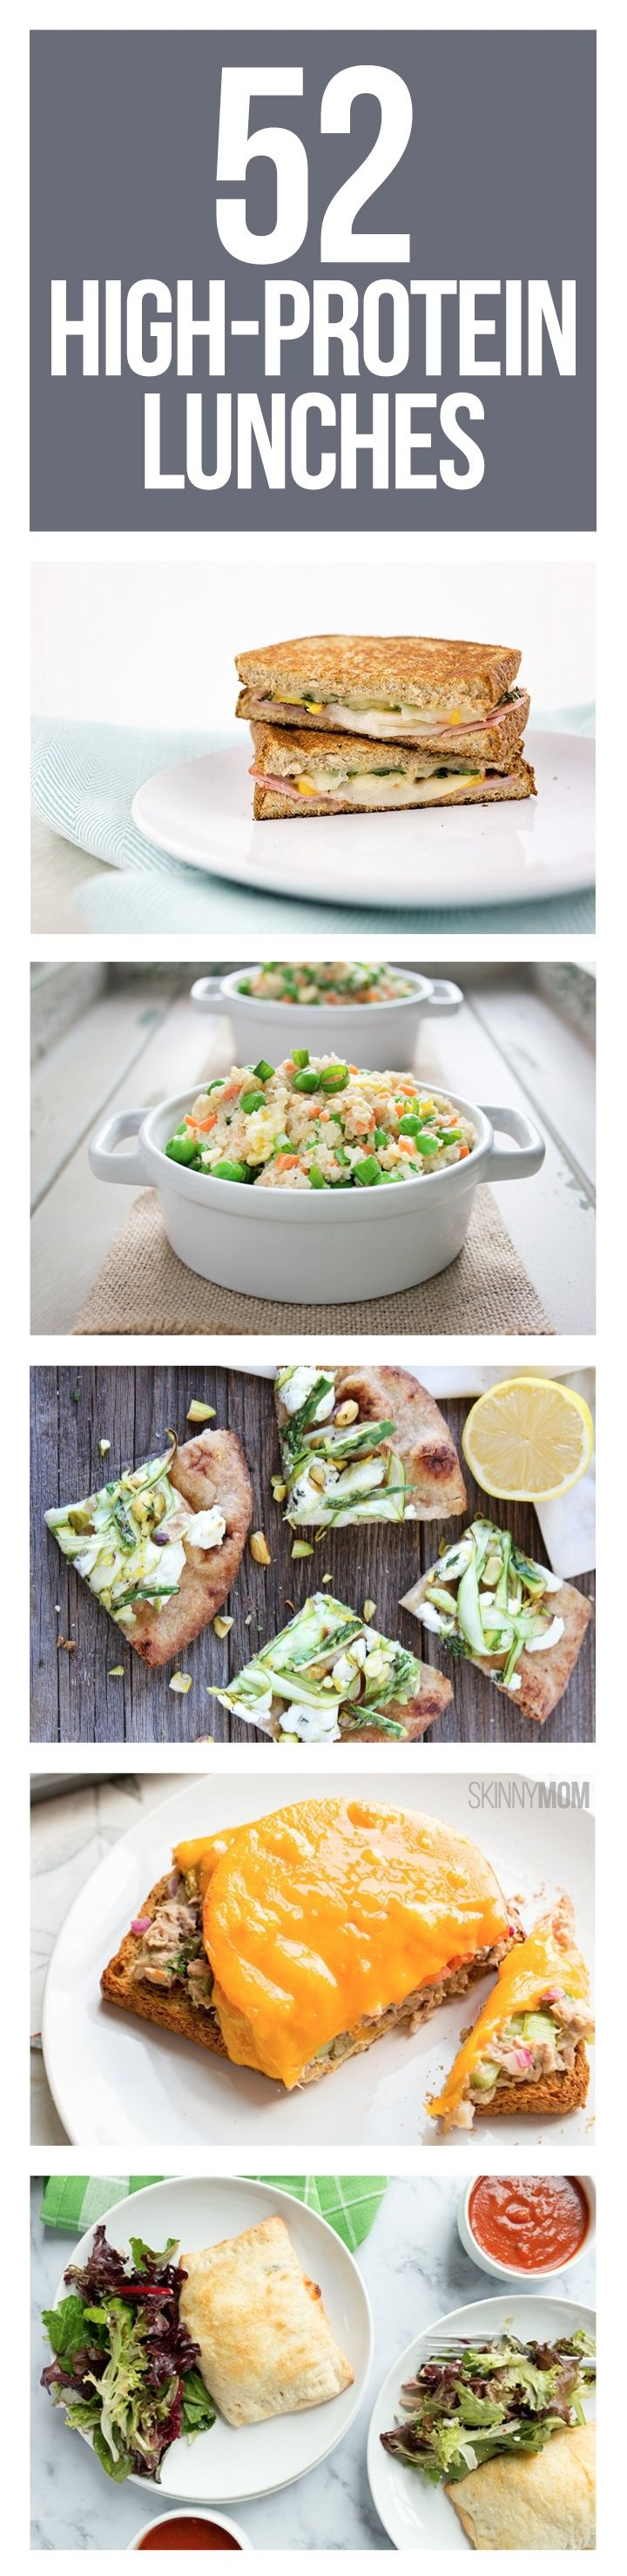 Fuel up with these lunches!  The best way to weight loss in 2016! READ MORE! #diet #weightlose #weightlosefruit #weightloserecipes